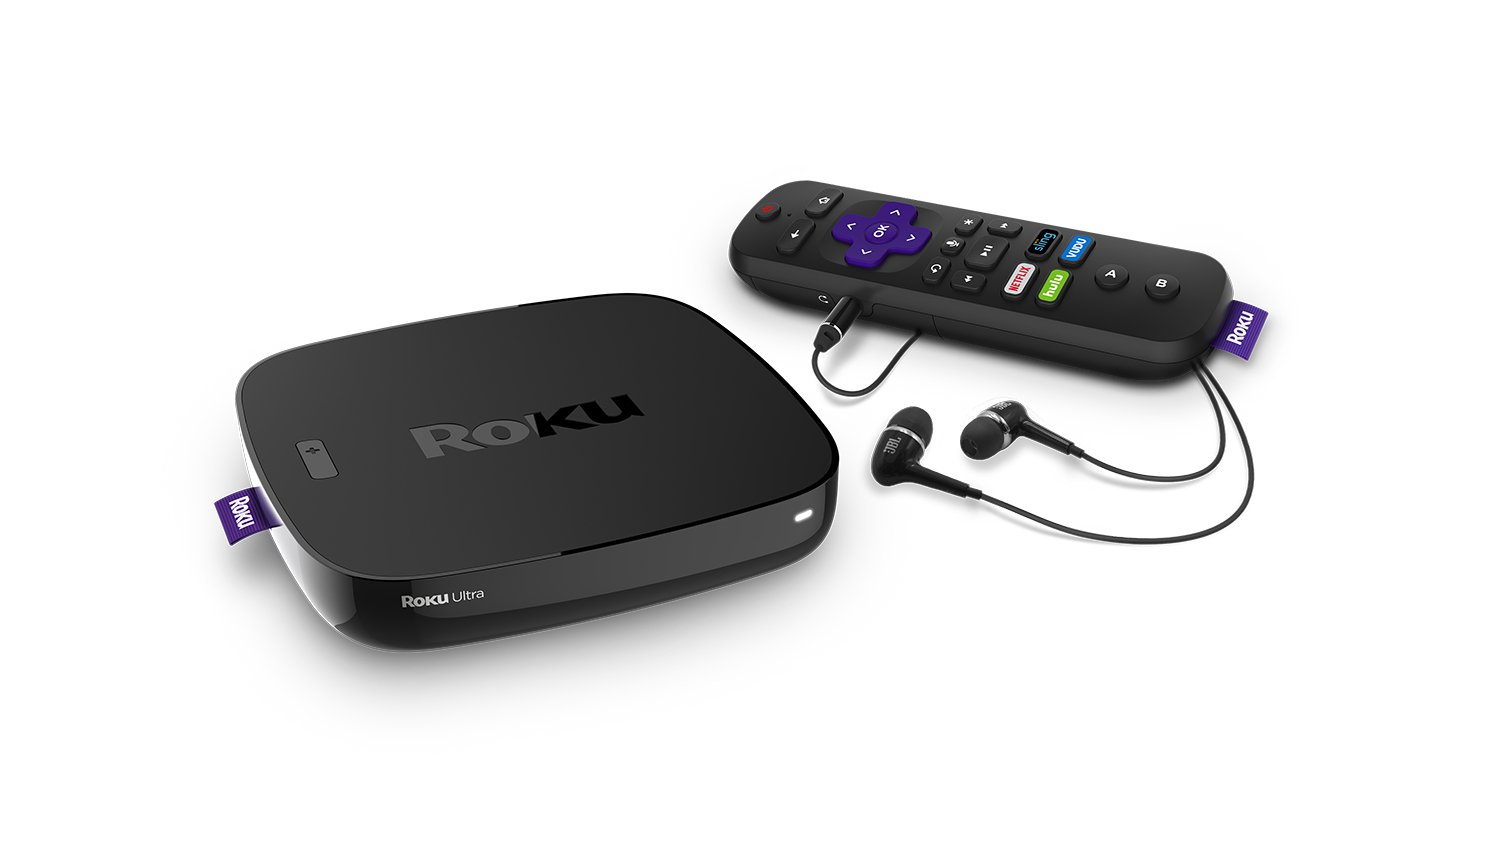 Roku Ultra 4K HDR Streaming Player (2018) with JBL headphones